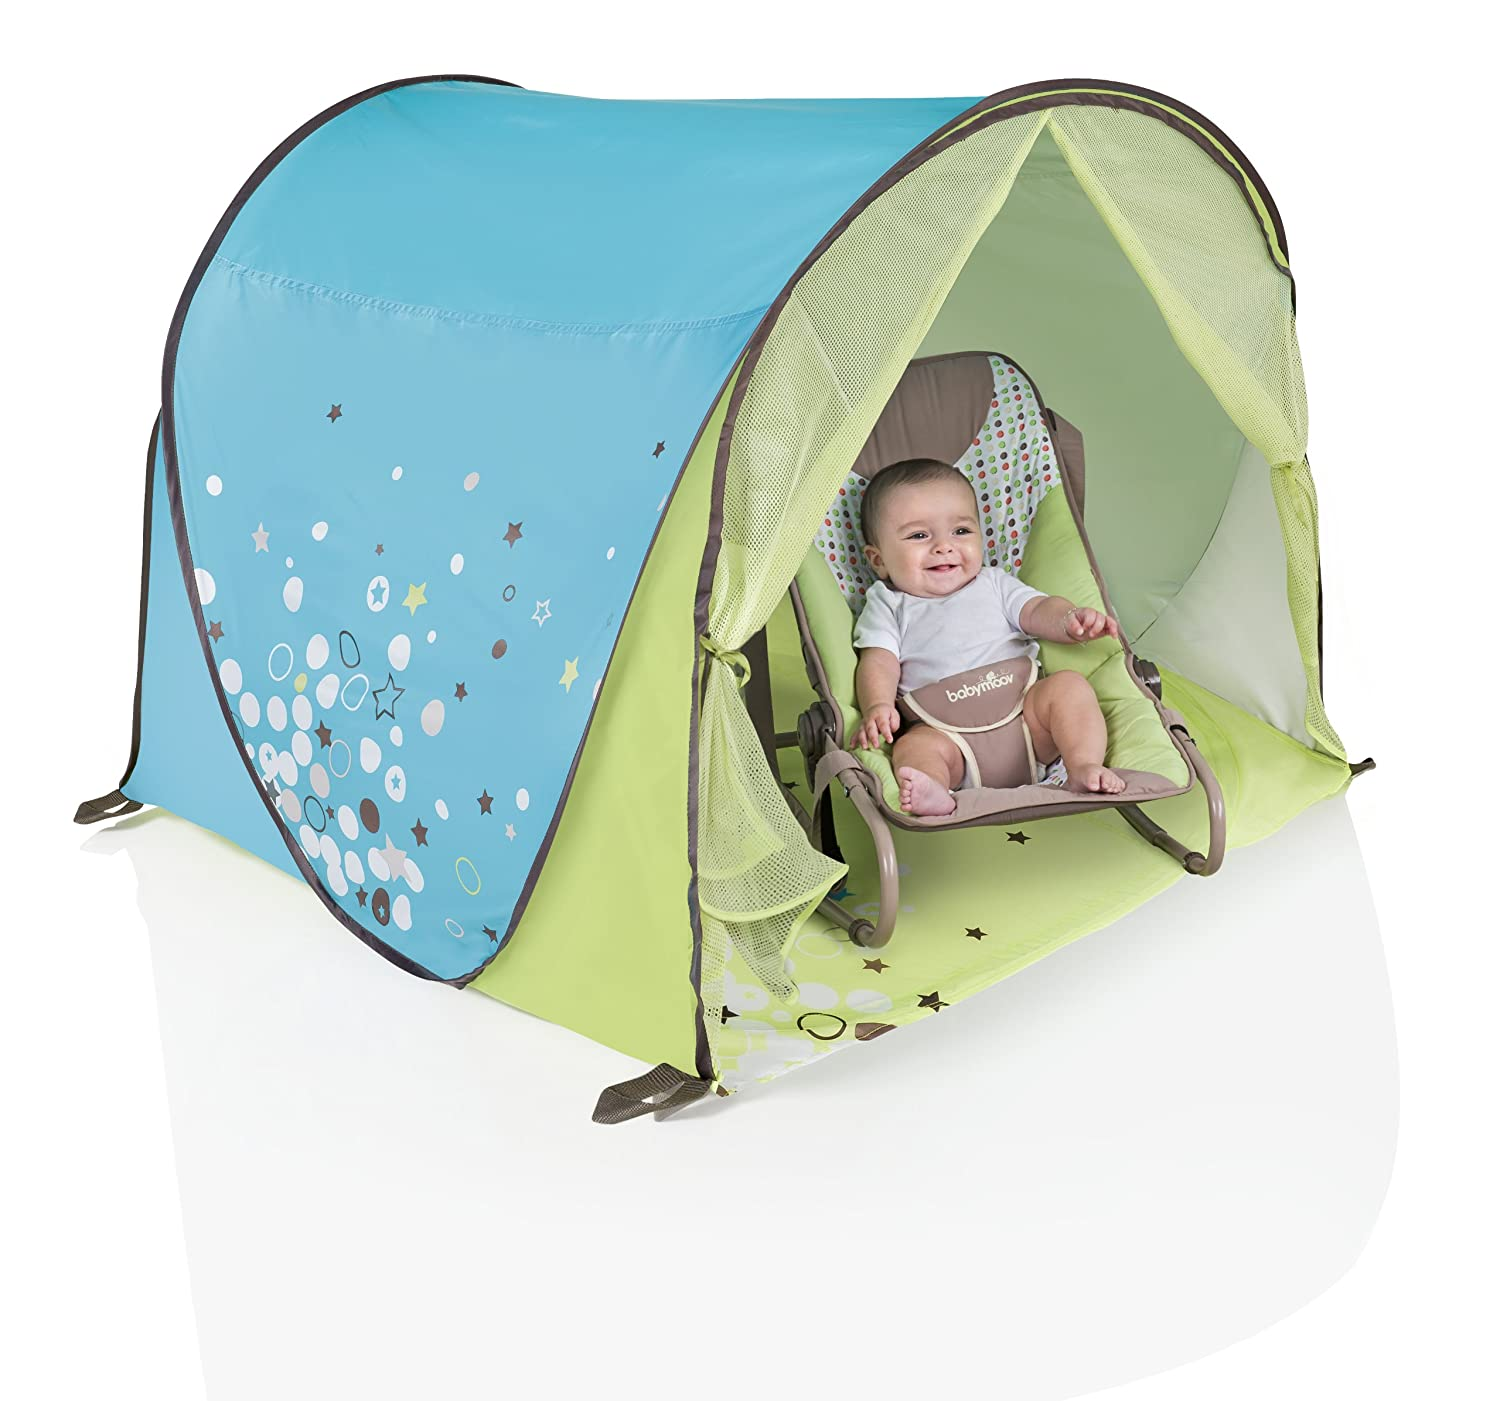 Amazon.com Babymoov Anti-UV Tent - UPF 50+ Sun Shelter for Toddlers and Children easily folds into a Carrying Bag for Outdoors u0026 Beach Baby  sc 1 st  Amazon.com : baby shade tent uv protection - memphite.com